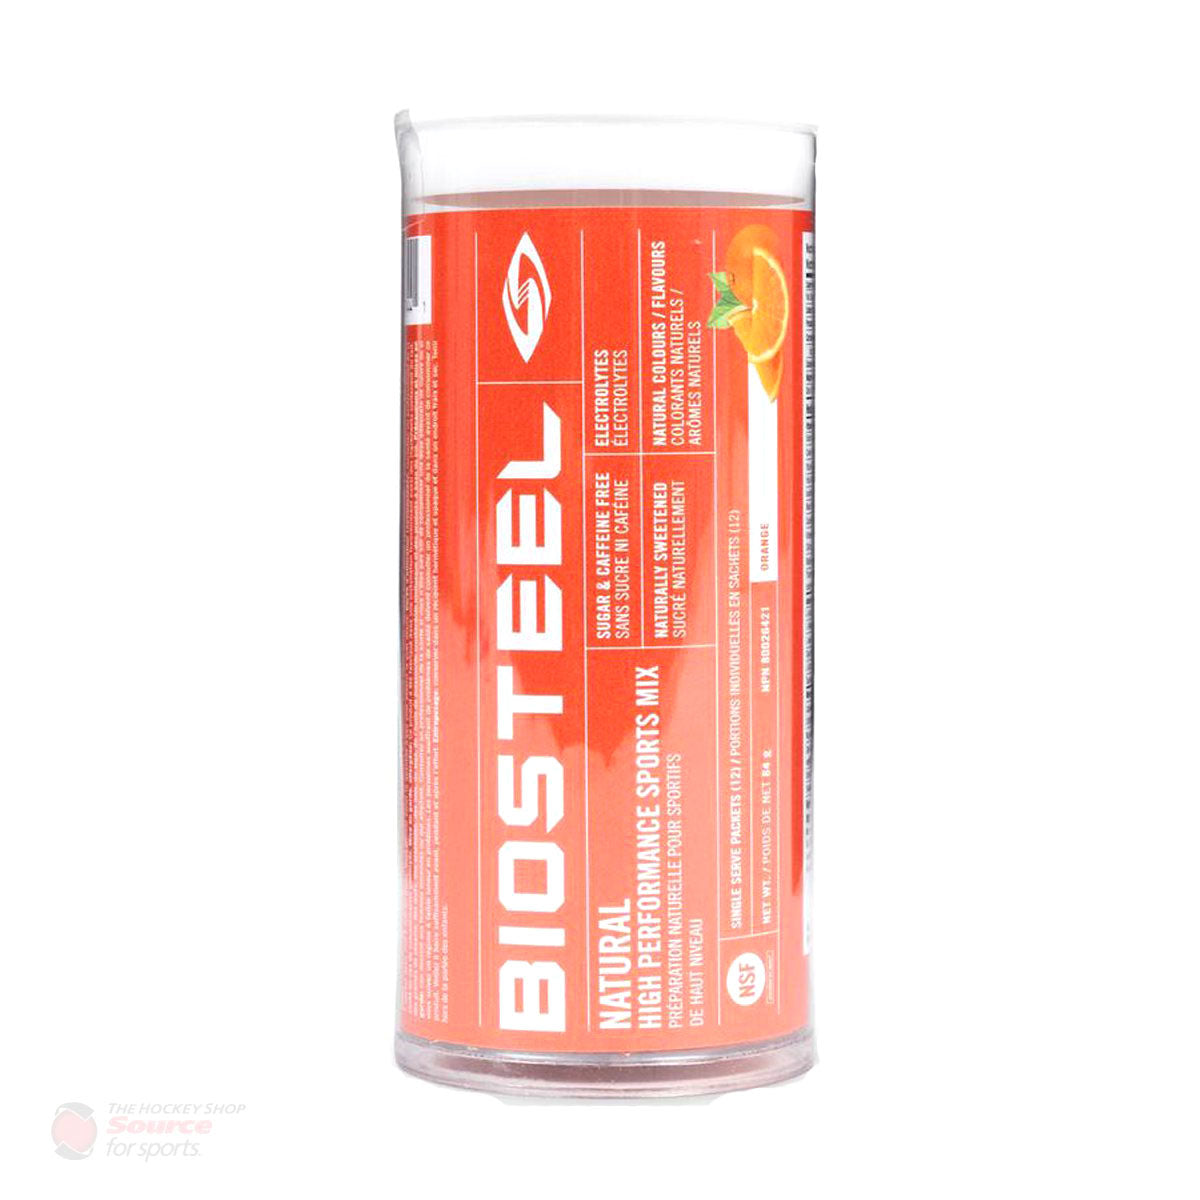 BioSteel High Performance Sports Mix (12 Packets) - Orange